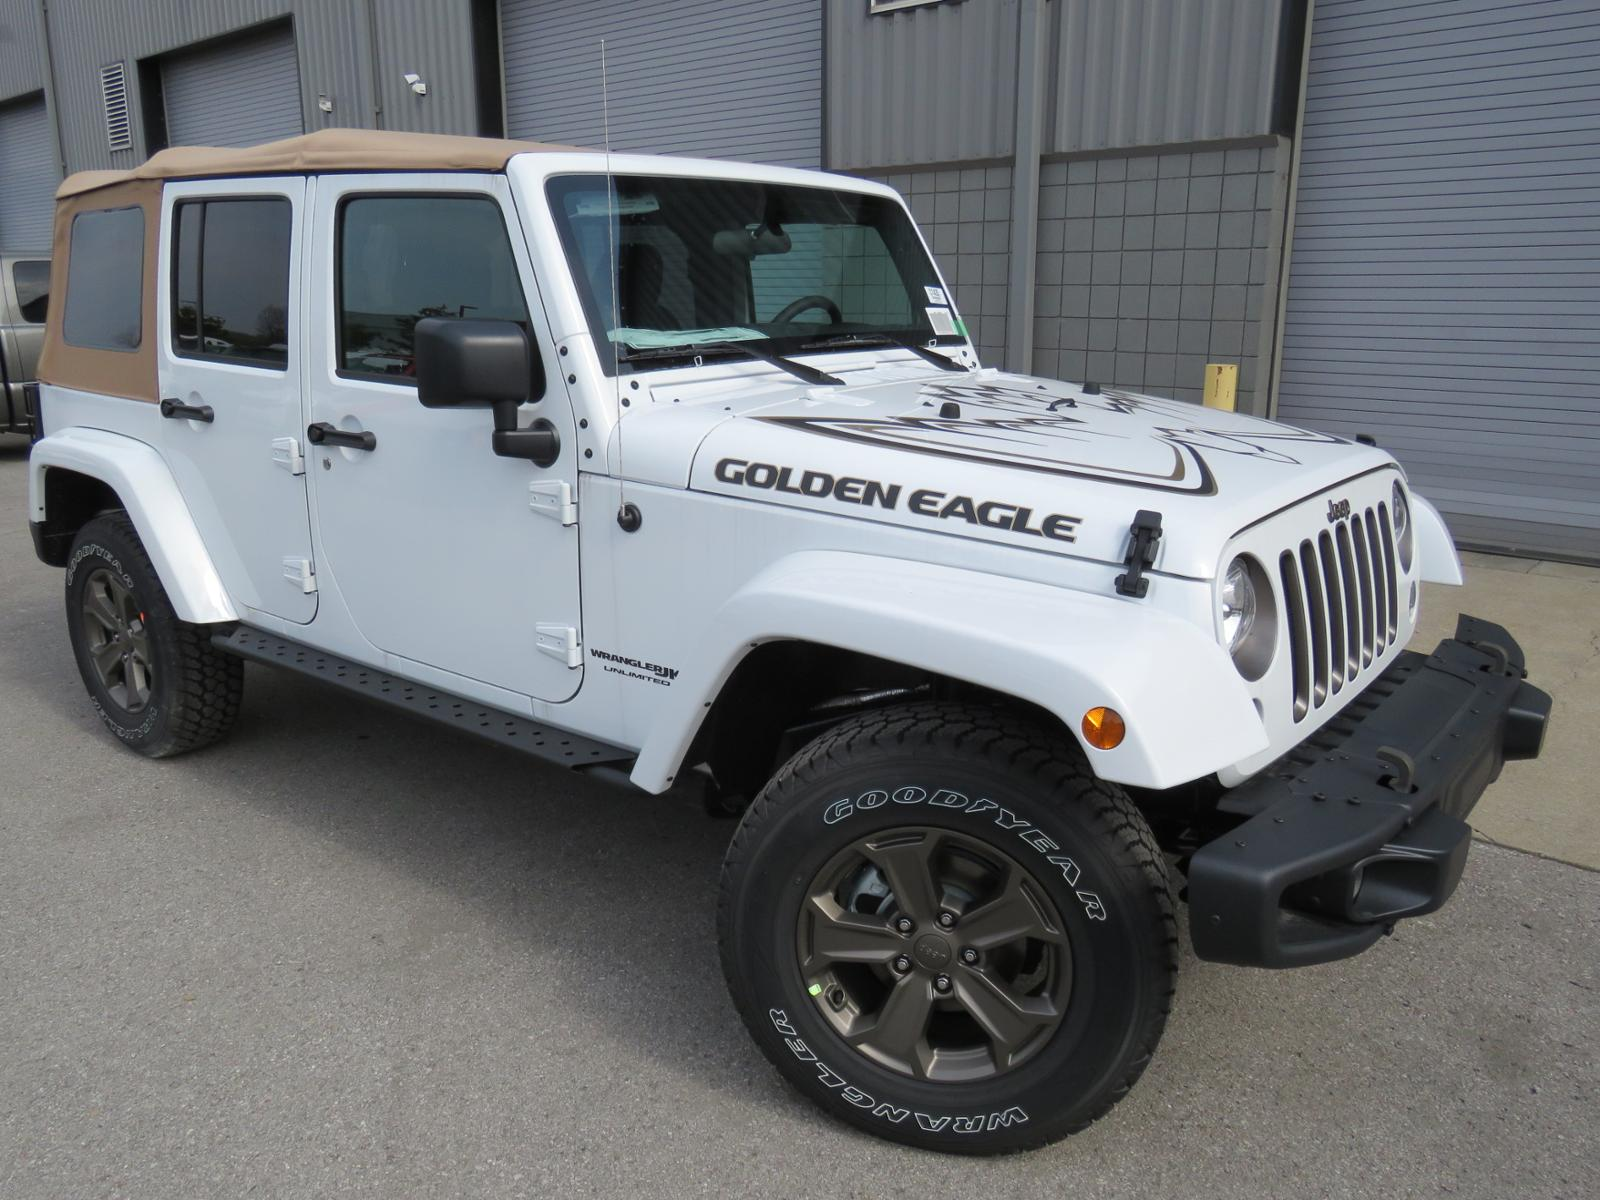 Wrangler Unlimited Towing >> New 2018 Jeep Wrangler JK Unlimited Golden Eagle Sport Utility #C1435 | Freeland Auto